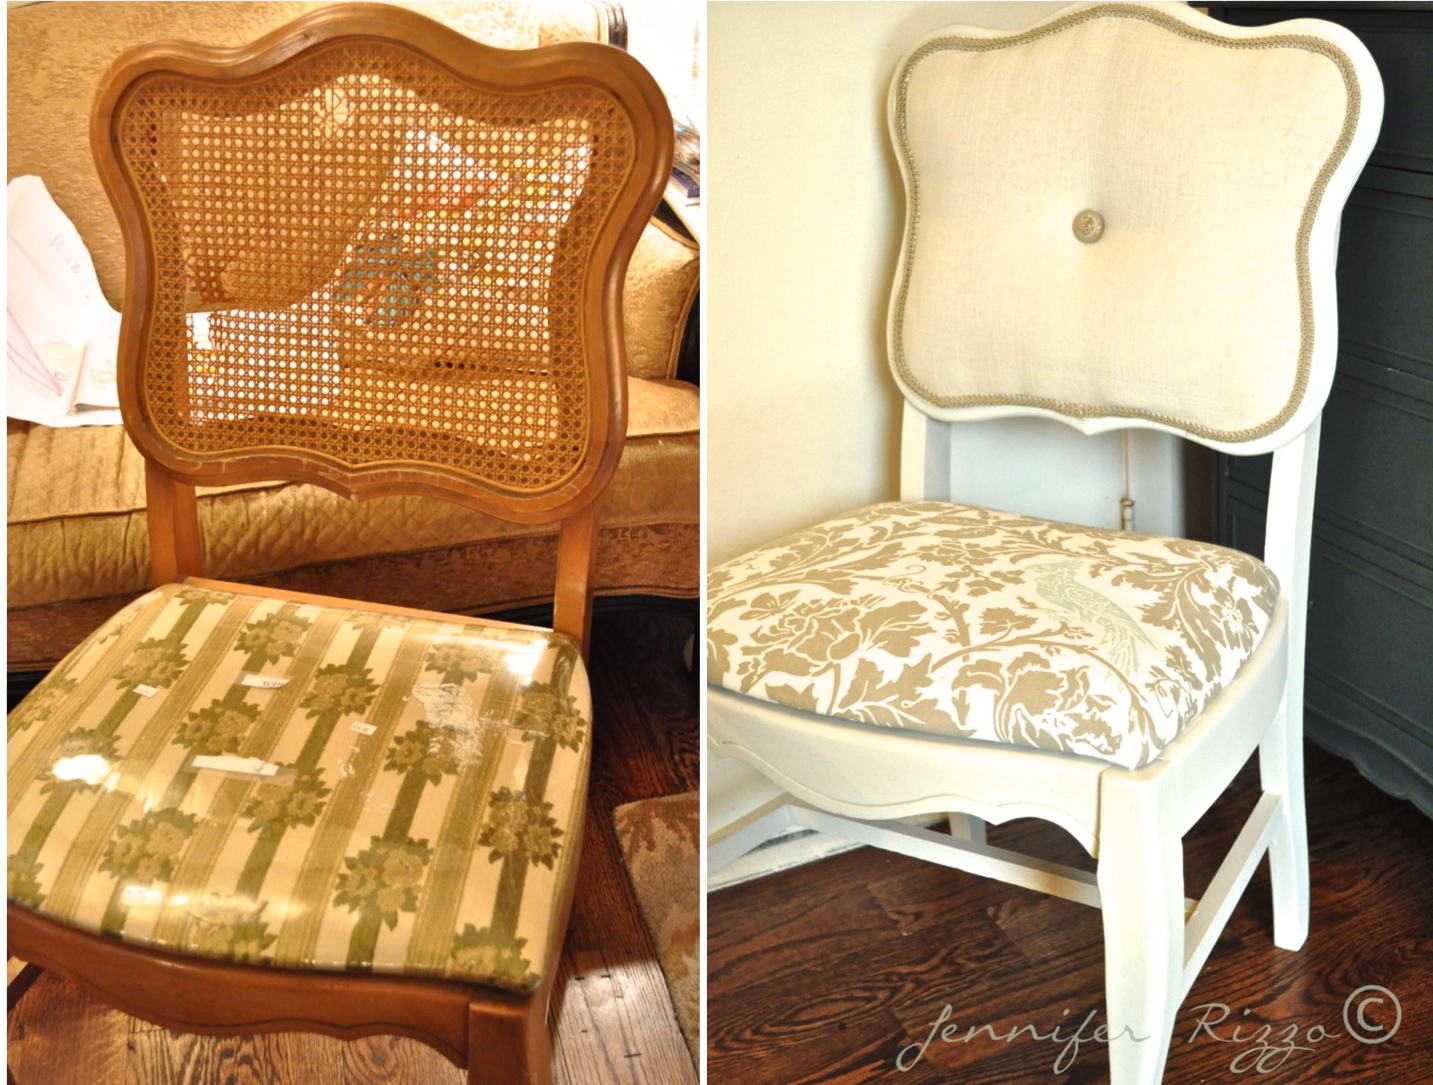 How To Replace Cane Back Chair With Fabric Black Office Chairs Arms Modernizing An Old Tufting Jennifer Rizzo The In Of My Van They Cracked All Over I Decided It Would Be Easier Make Upholstered Piece Instead Trying Re